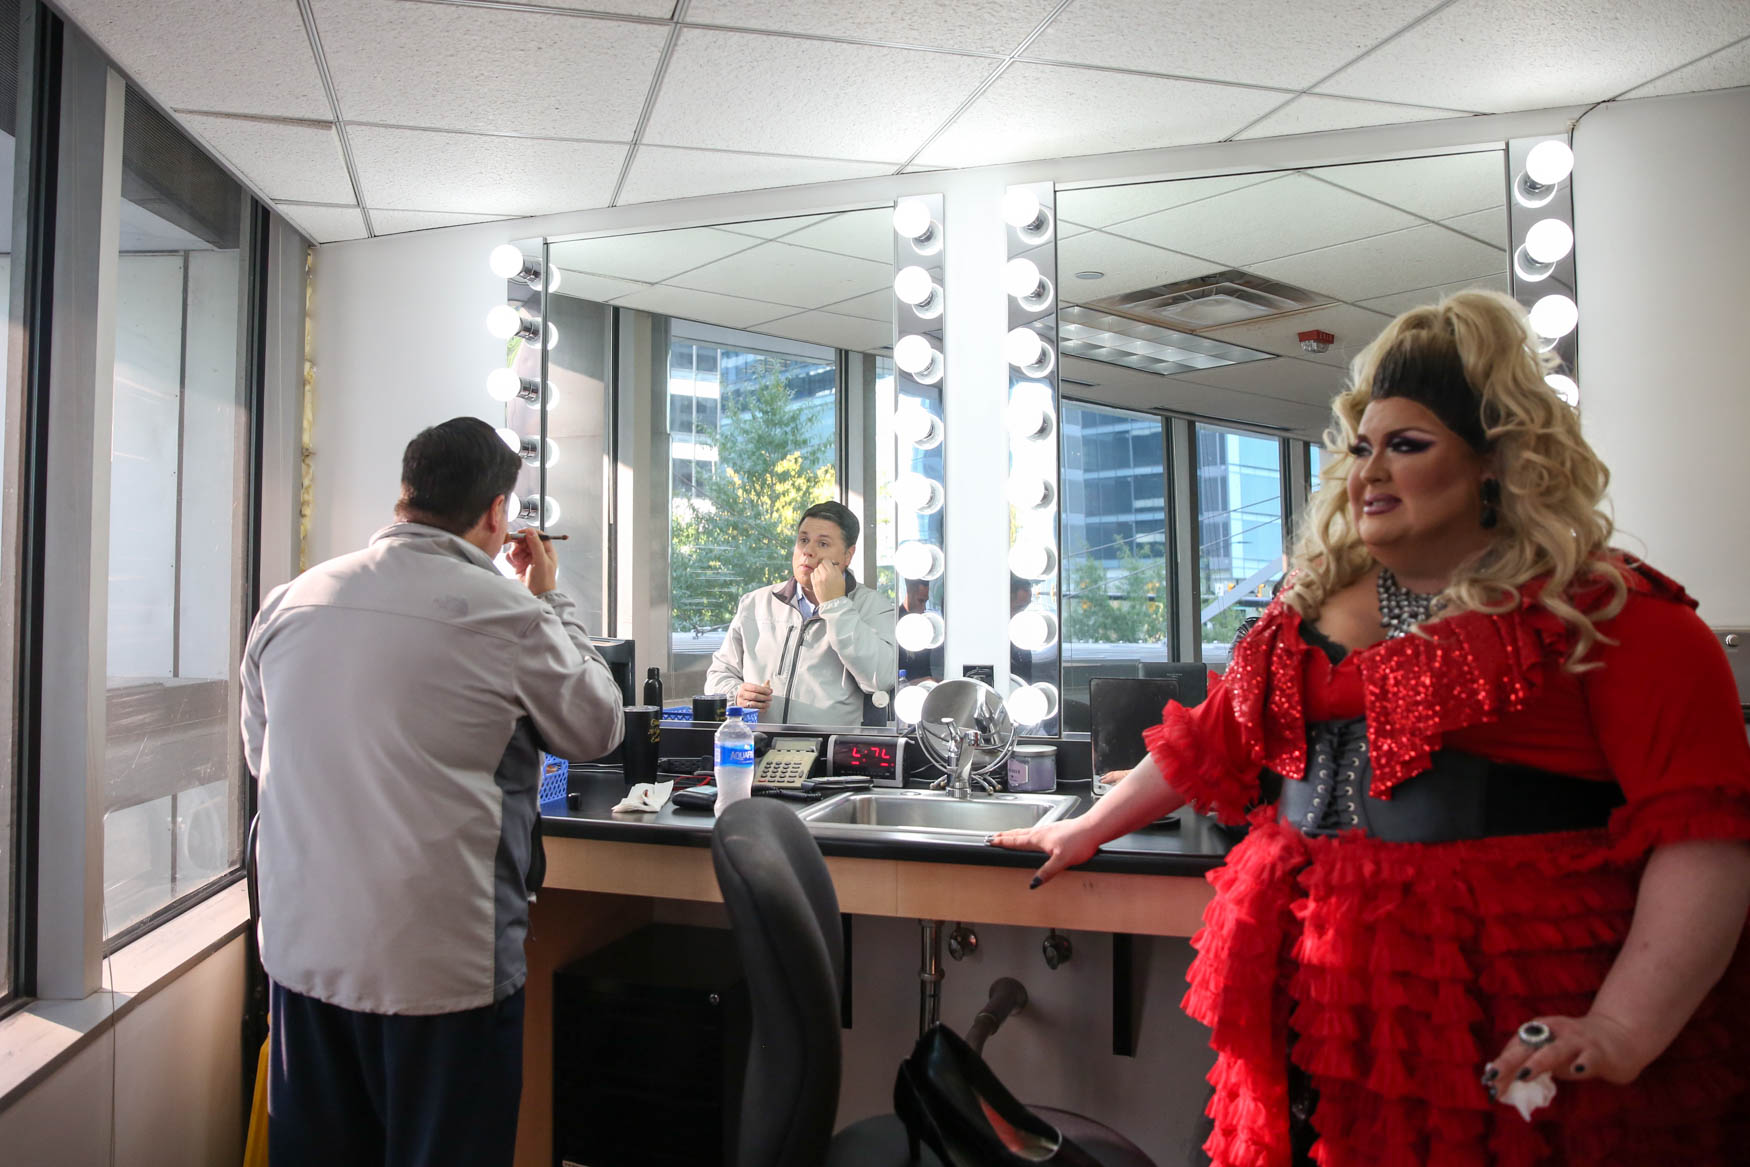 Local drag queen{ }Ba 'Naka watches as{ }Meteorologist Brian van de Graaff puts on his makeup before they both make a guest appearance on Good Morning Washington. Every on-air talent applies makeup before getting in front of the camera.{ }(Amanda Andrade-Rhaodes/DC Refined)